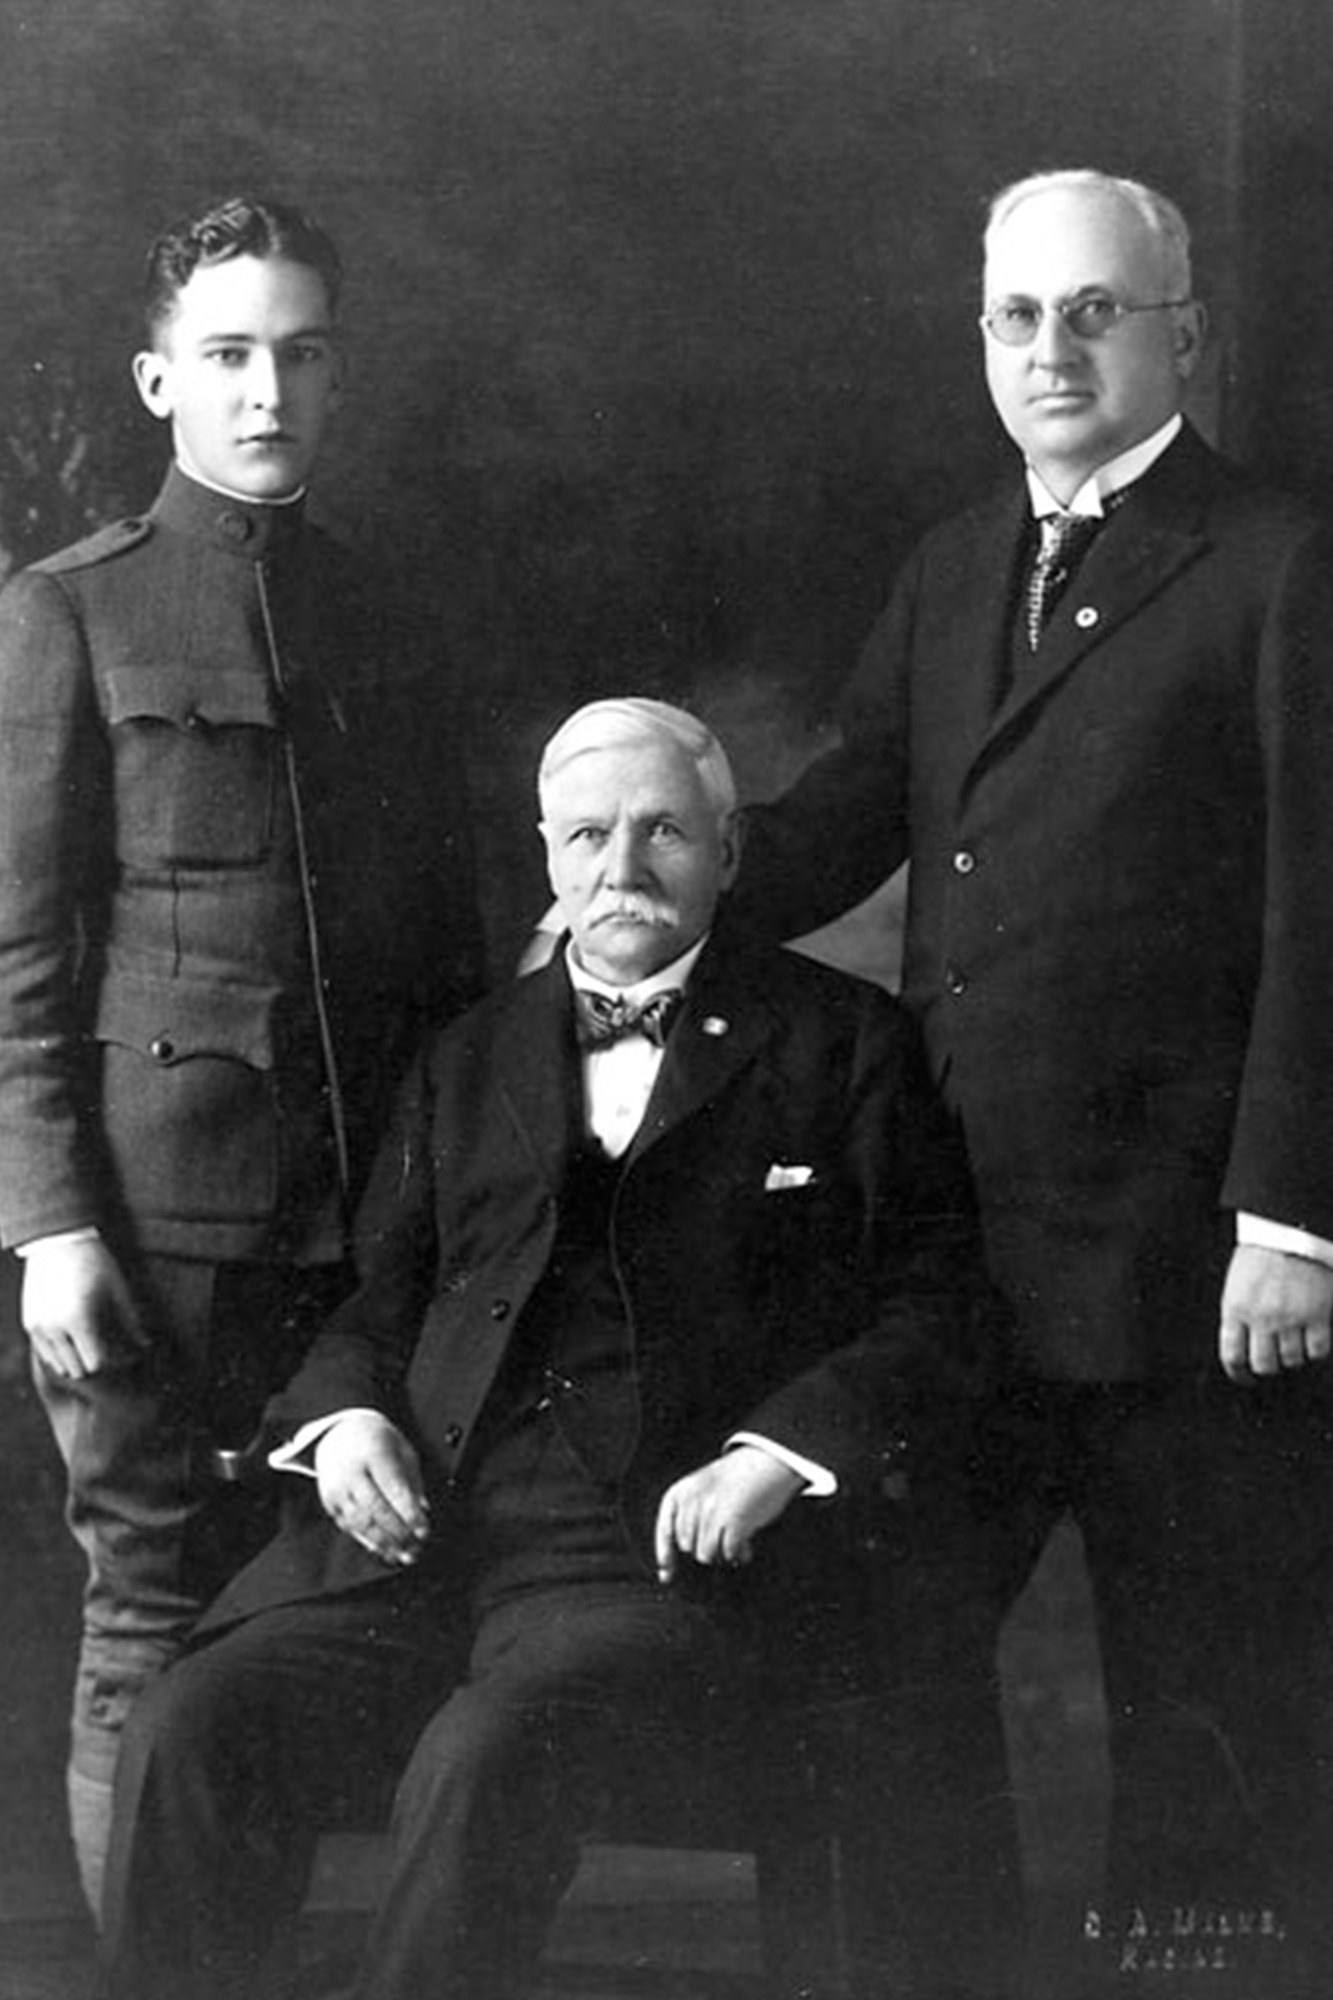 Herbert 肖像。F. Johnson, Sr.、Samuel Curtis Johnson 和 Herbert F Johnson, Jr.